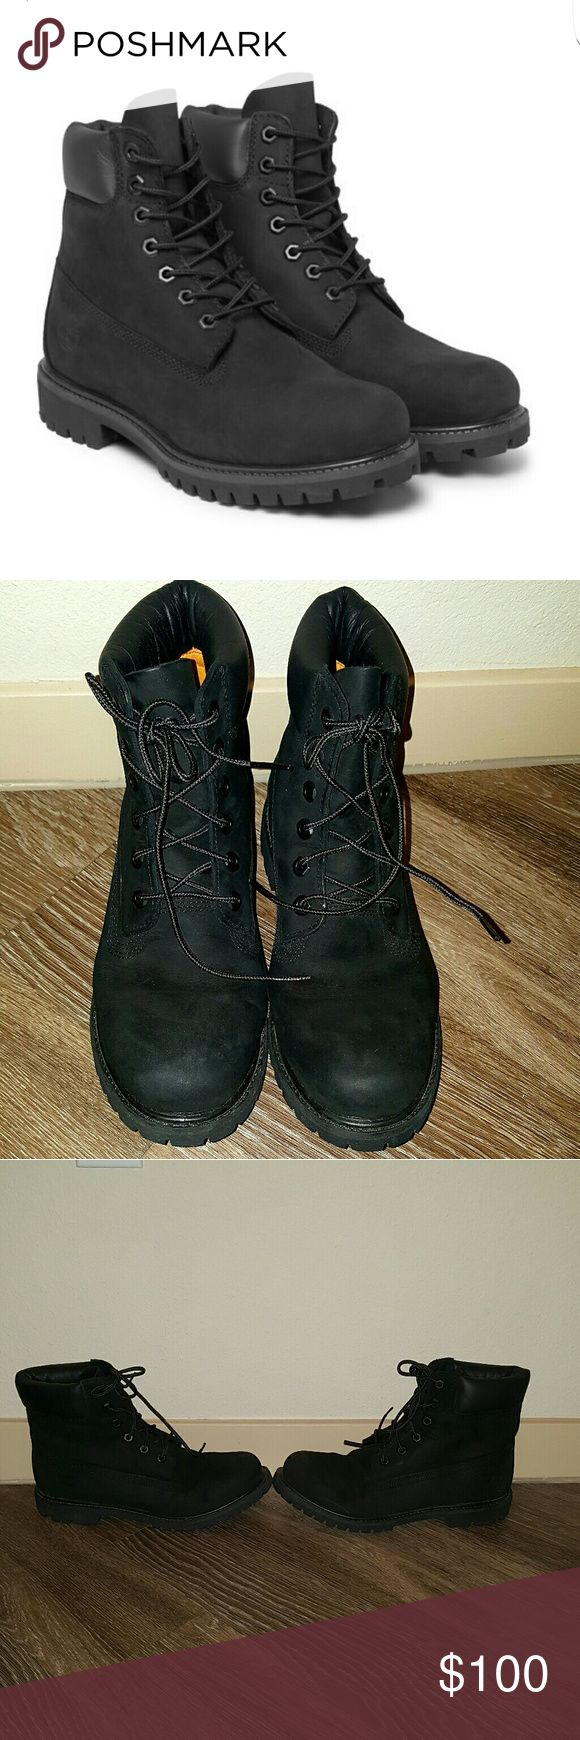 25 best ideas about all black timberland boots on